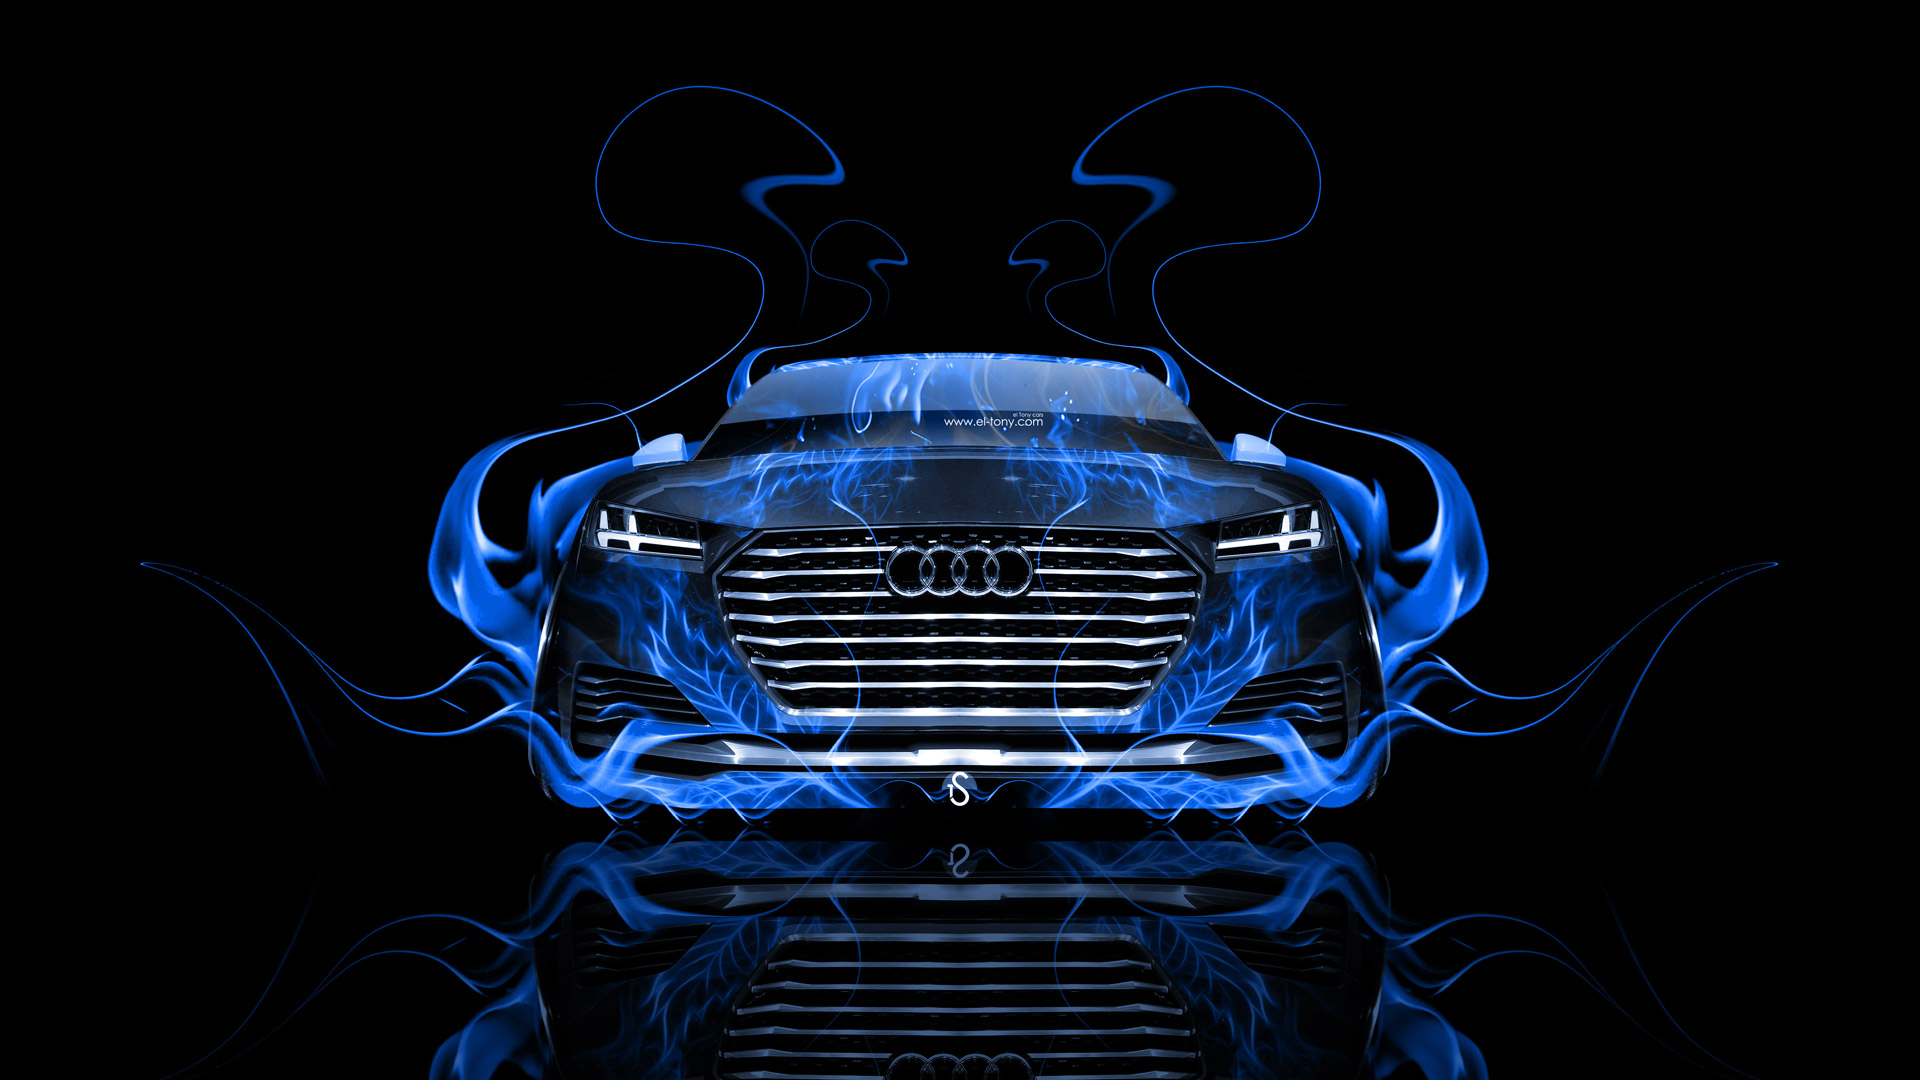 Audi Tt Offroad Front Blue Fire Abstract Car Hd Wallpapers Design By Tony Kokhan Www El Tony Com